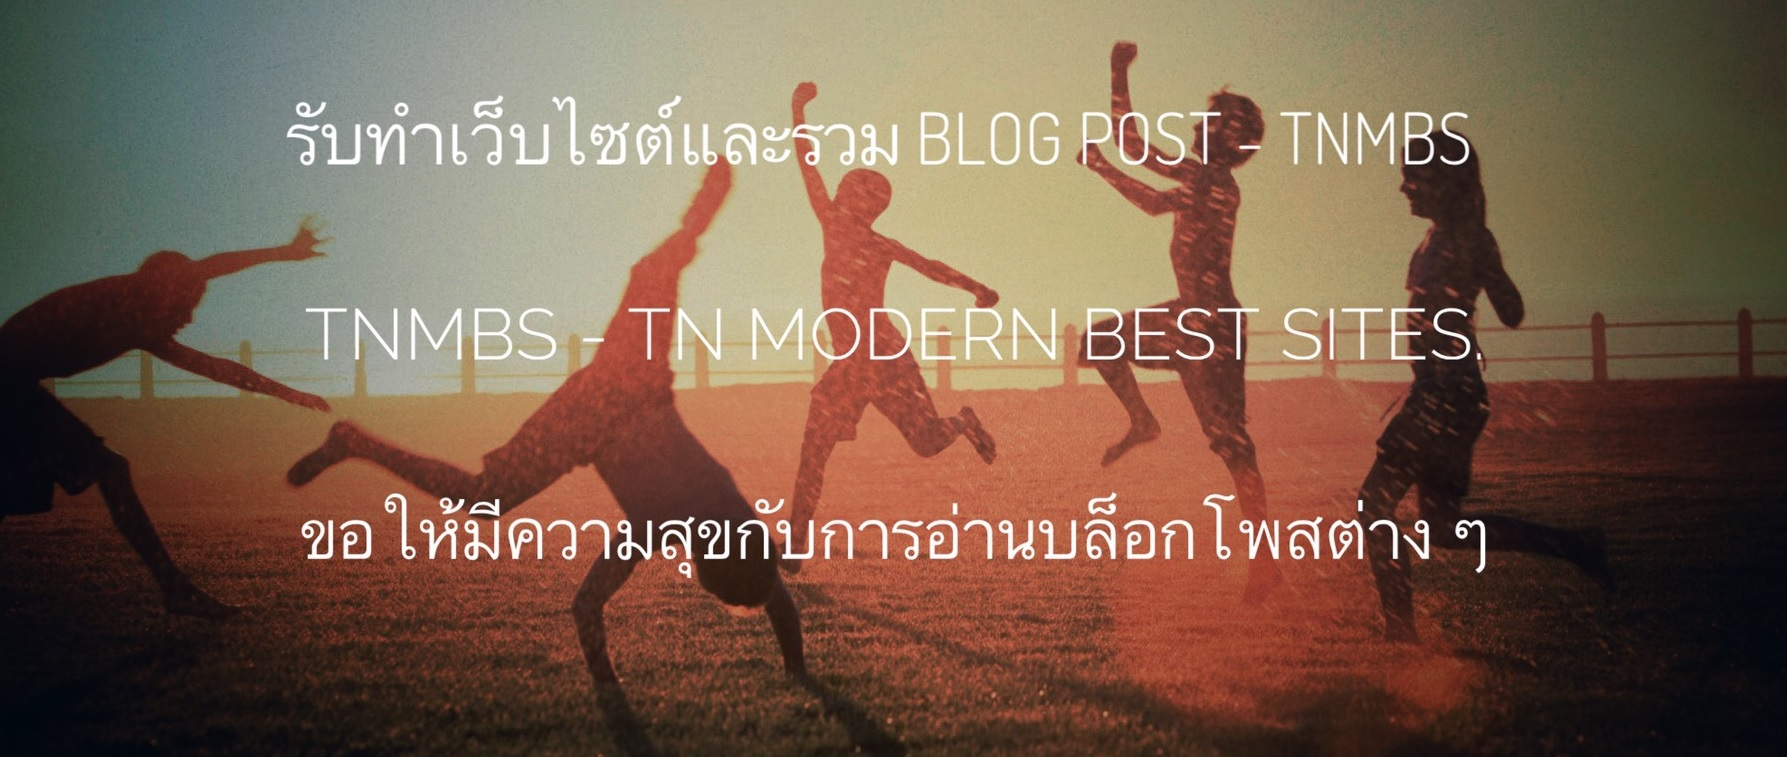 TNMBS - TN MODERN BEST SITES